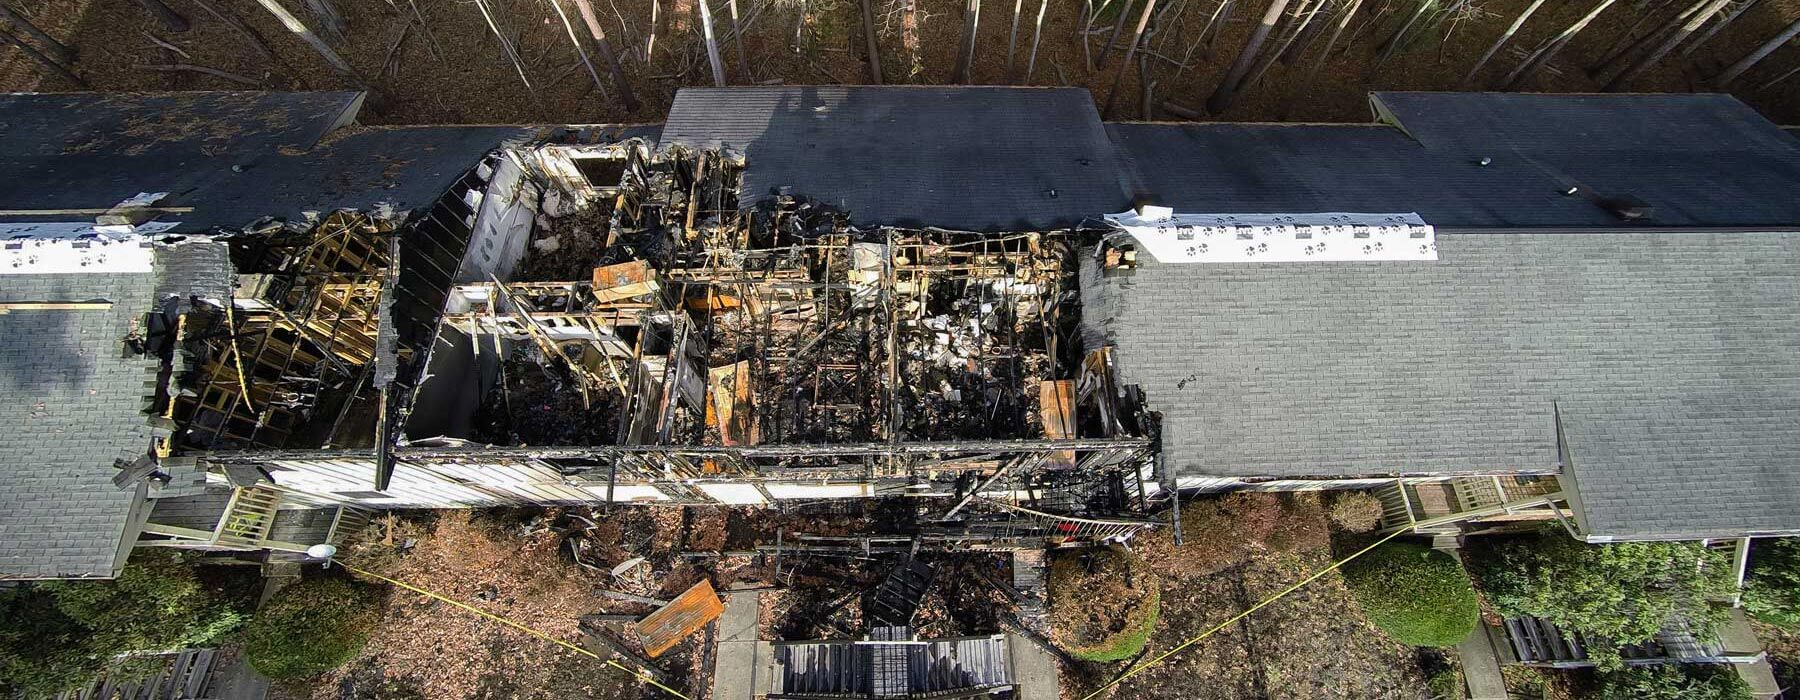 Fire Damage Restoration in Rockingham, NC